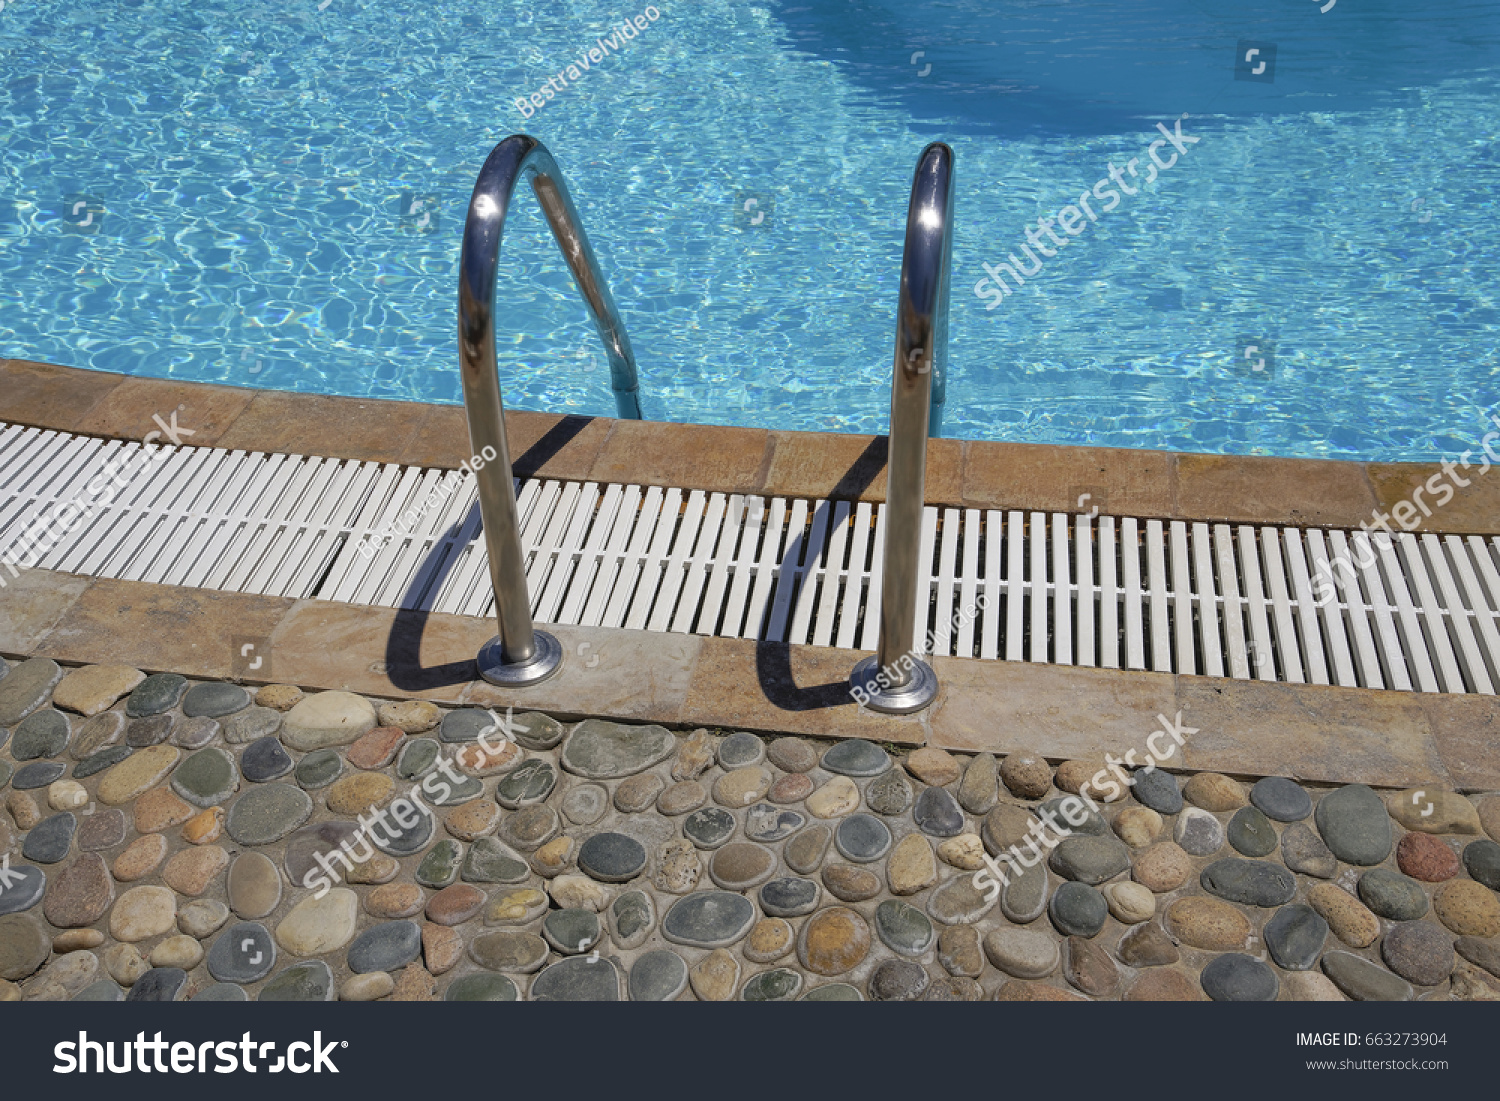 Outdoor Swimming Pool Ladder Grab Bars Stock Photo 663273904 ...